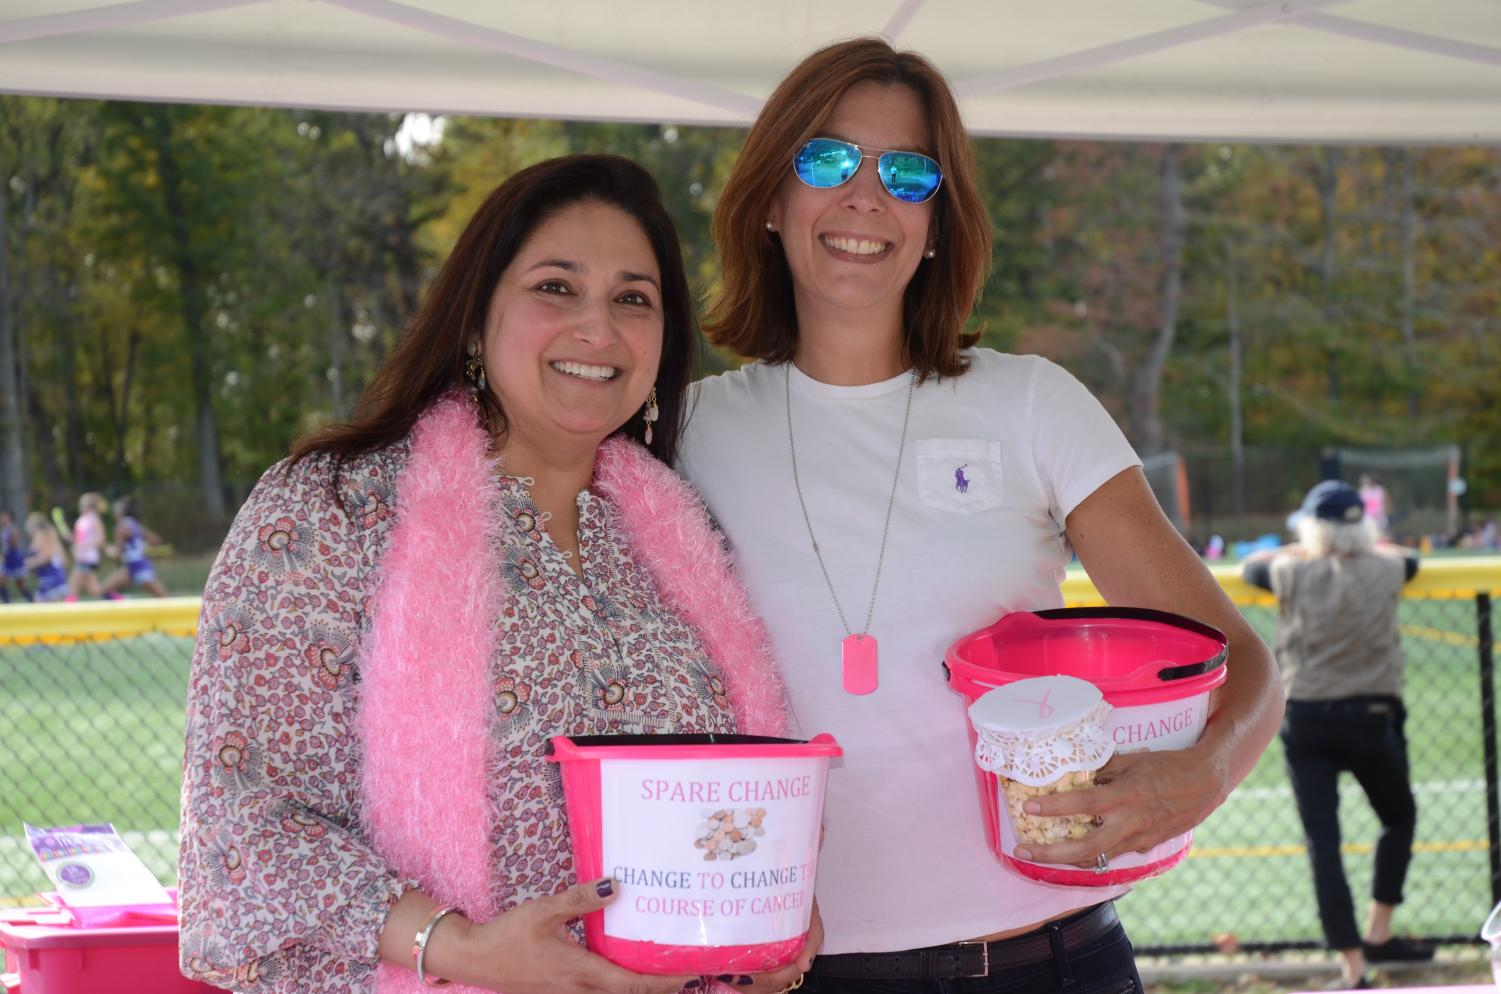 The parents of the Hackley Varsity Field Hockey team ran a bake sale during Alumni Day to raise proceeds for Breast Cancer Research. The bake sale sold everything from baked goods to kettle corn, raising over $500 by the end of the day.